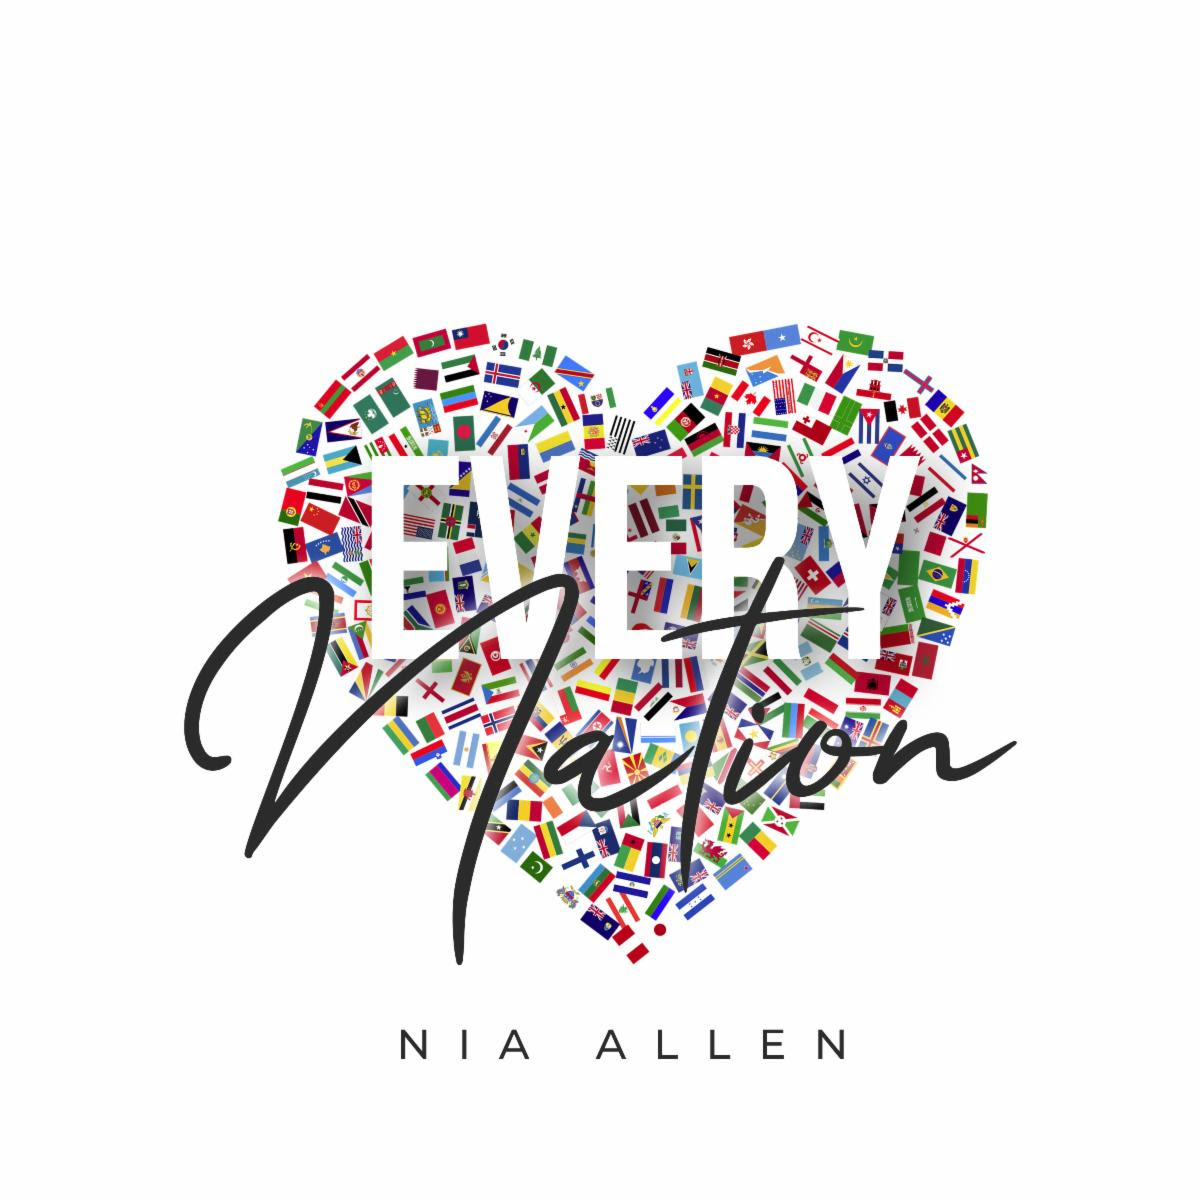 Nia Allen Releases New EP EVERY NATION, Available Now